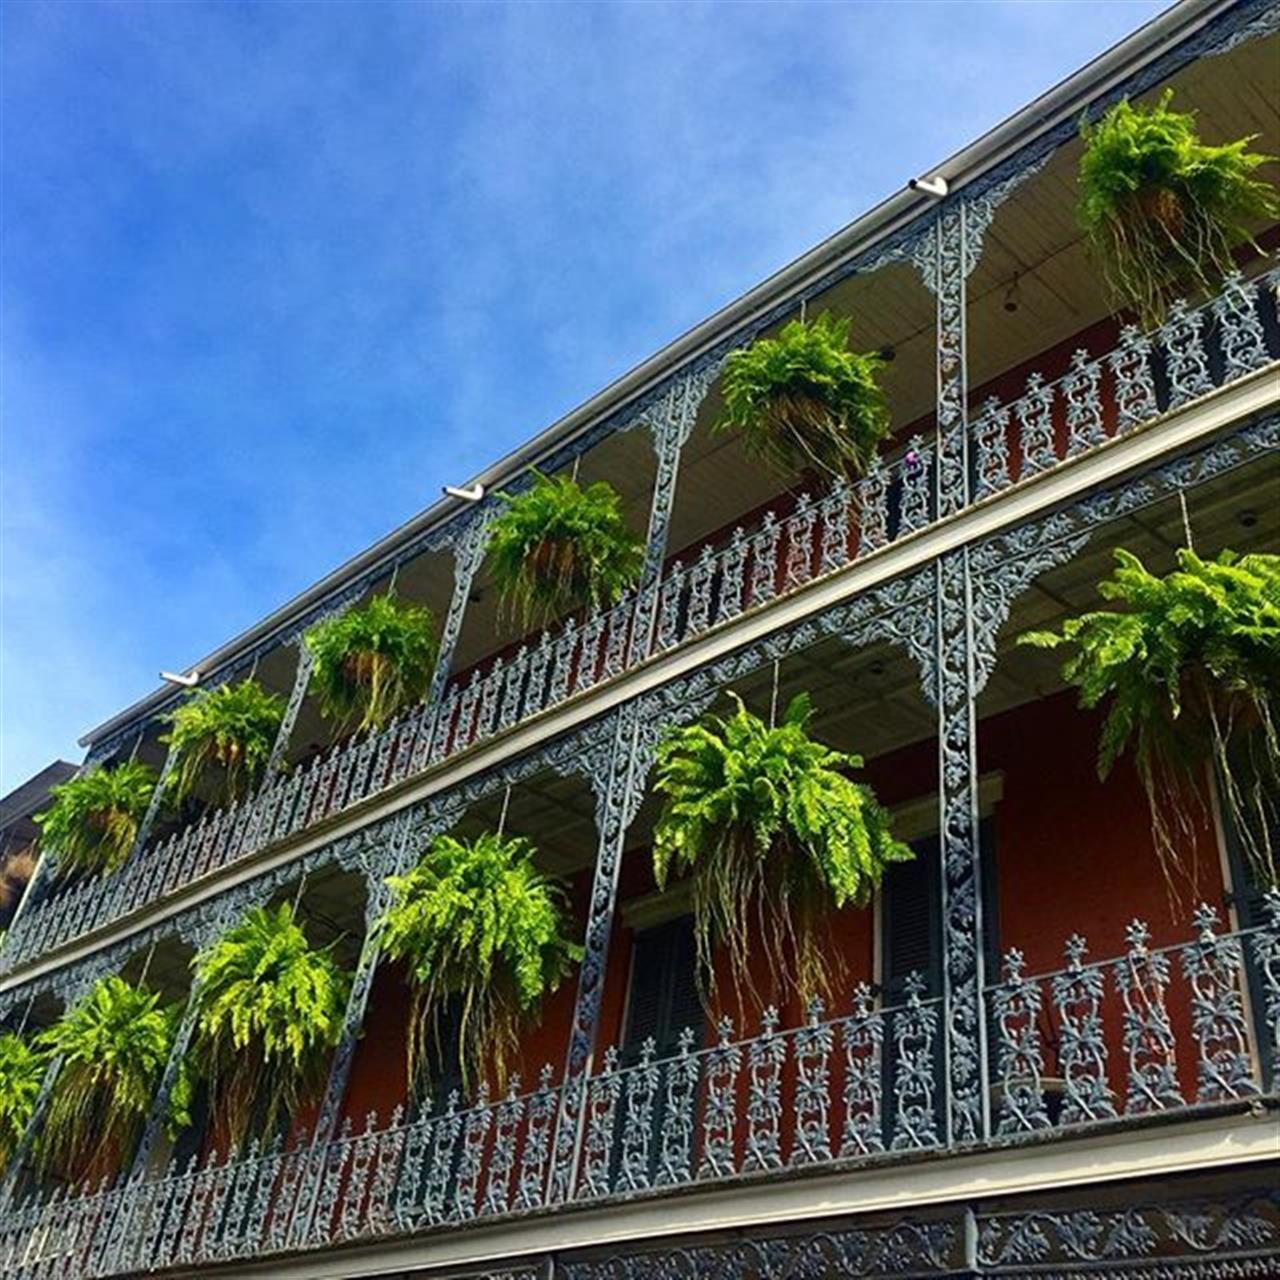 80 degrees makes for an especially #HappyTuesday in New Orleans!